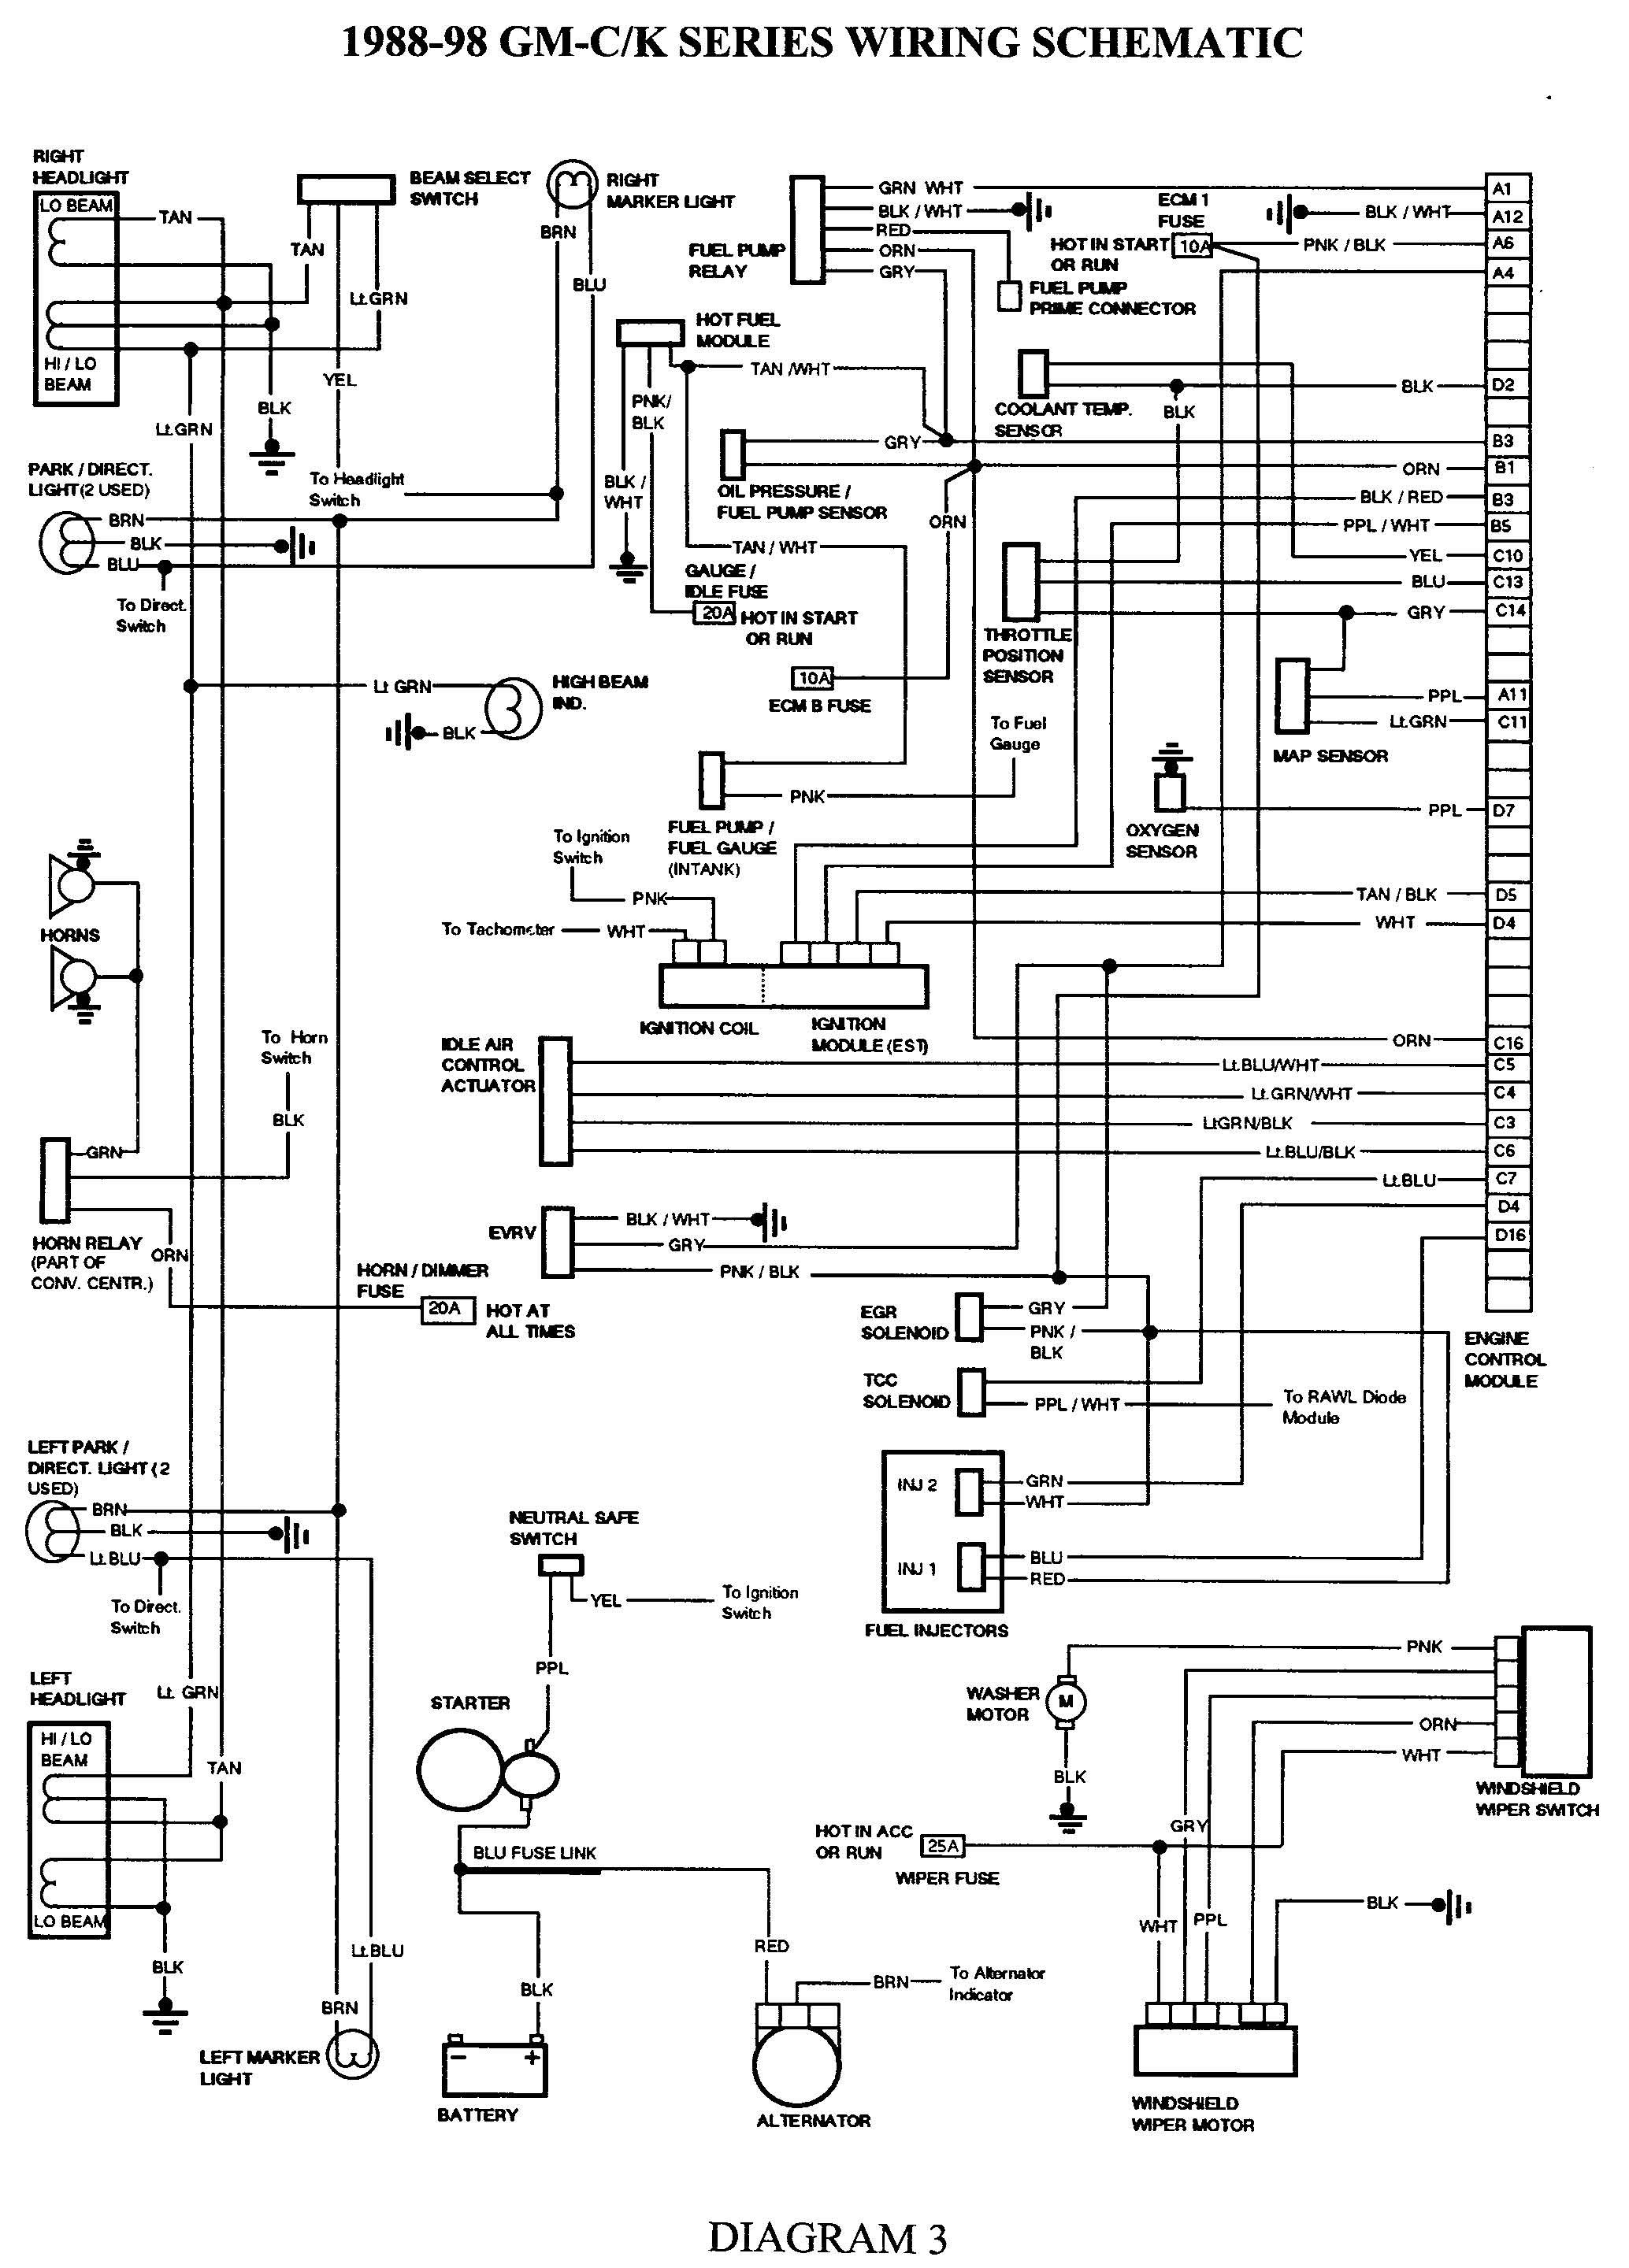 1998 Chevy Cavalier Wiring Diagram - 2.xeghaqqt.chrisblacksbio.info on 2003 cavalier engine, 2003 cavalier water pump, 2003 cavalier oil filter, 2003 cavalier timing chain, 2003 cavalier valve cover, 2003 cavalier fuel pressure regulator, 2003 cavalier instrument cluster, 2003 cavalier fuel injectors, 2003 cavalier instrument panel, 2003 cavalier voltage regulator, 2003 cavalier steering column, 2003 cavalier fuel pump, 2003 cavalier purge valve, 2003 cavalier fuse panel, 2003 cavalier cylinder head, 2003 cavalier muffler hanger, 2003 cavalier dash panel, 2003 cavalier crank sensor, 2003 cavalier speed sensor, 2003 cavalier power steering,